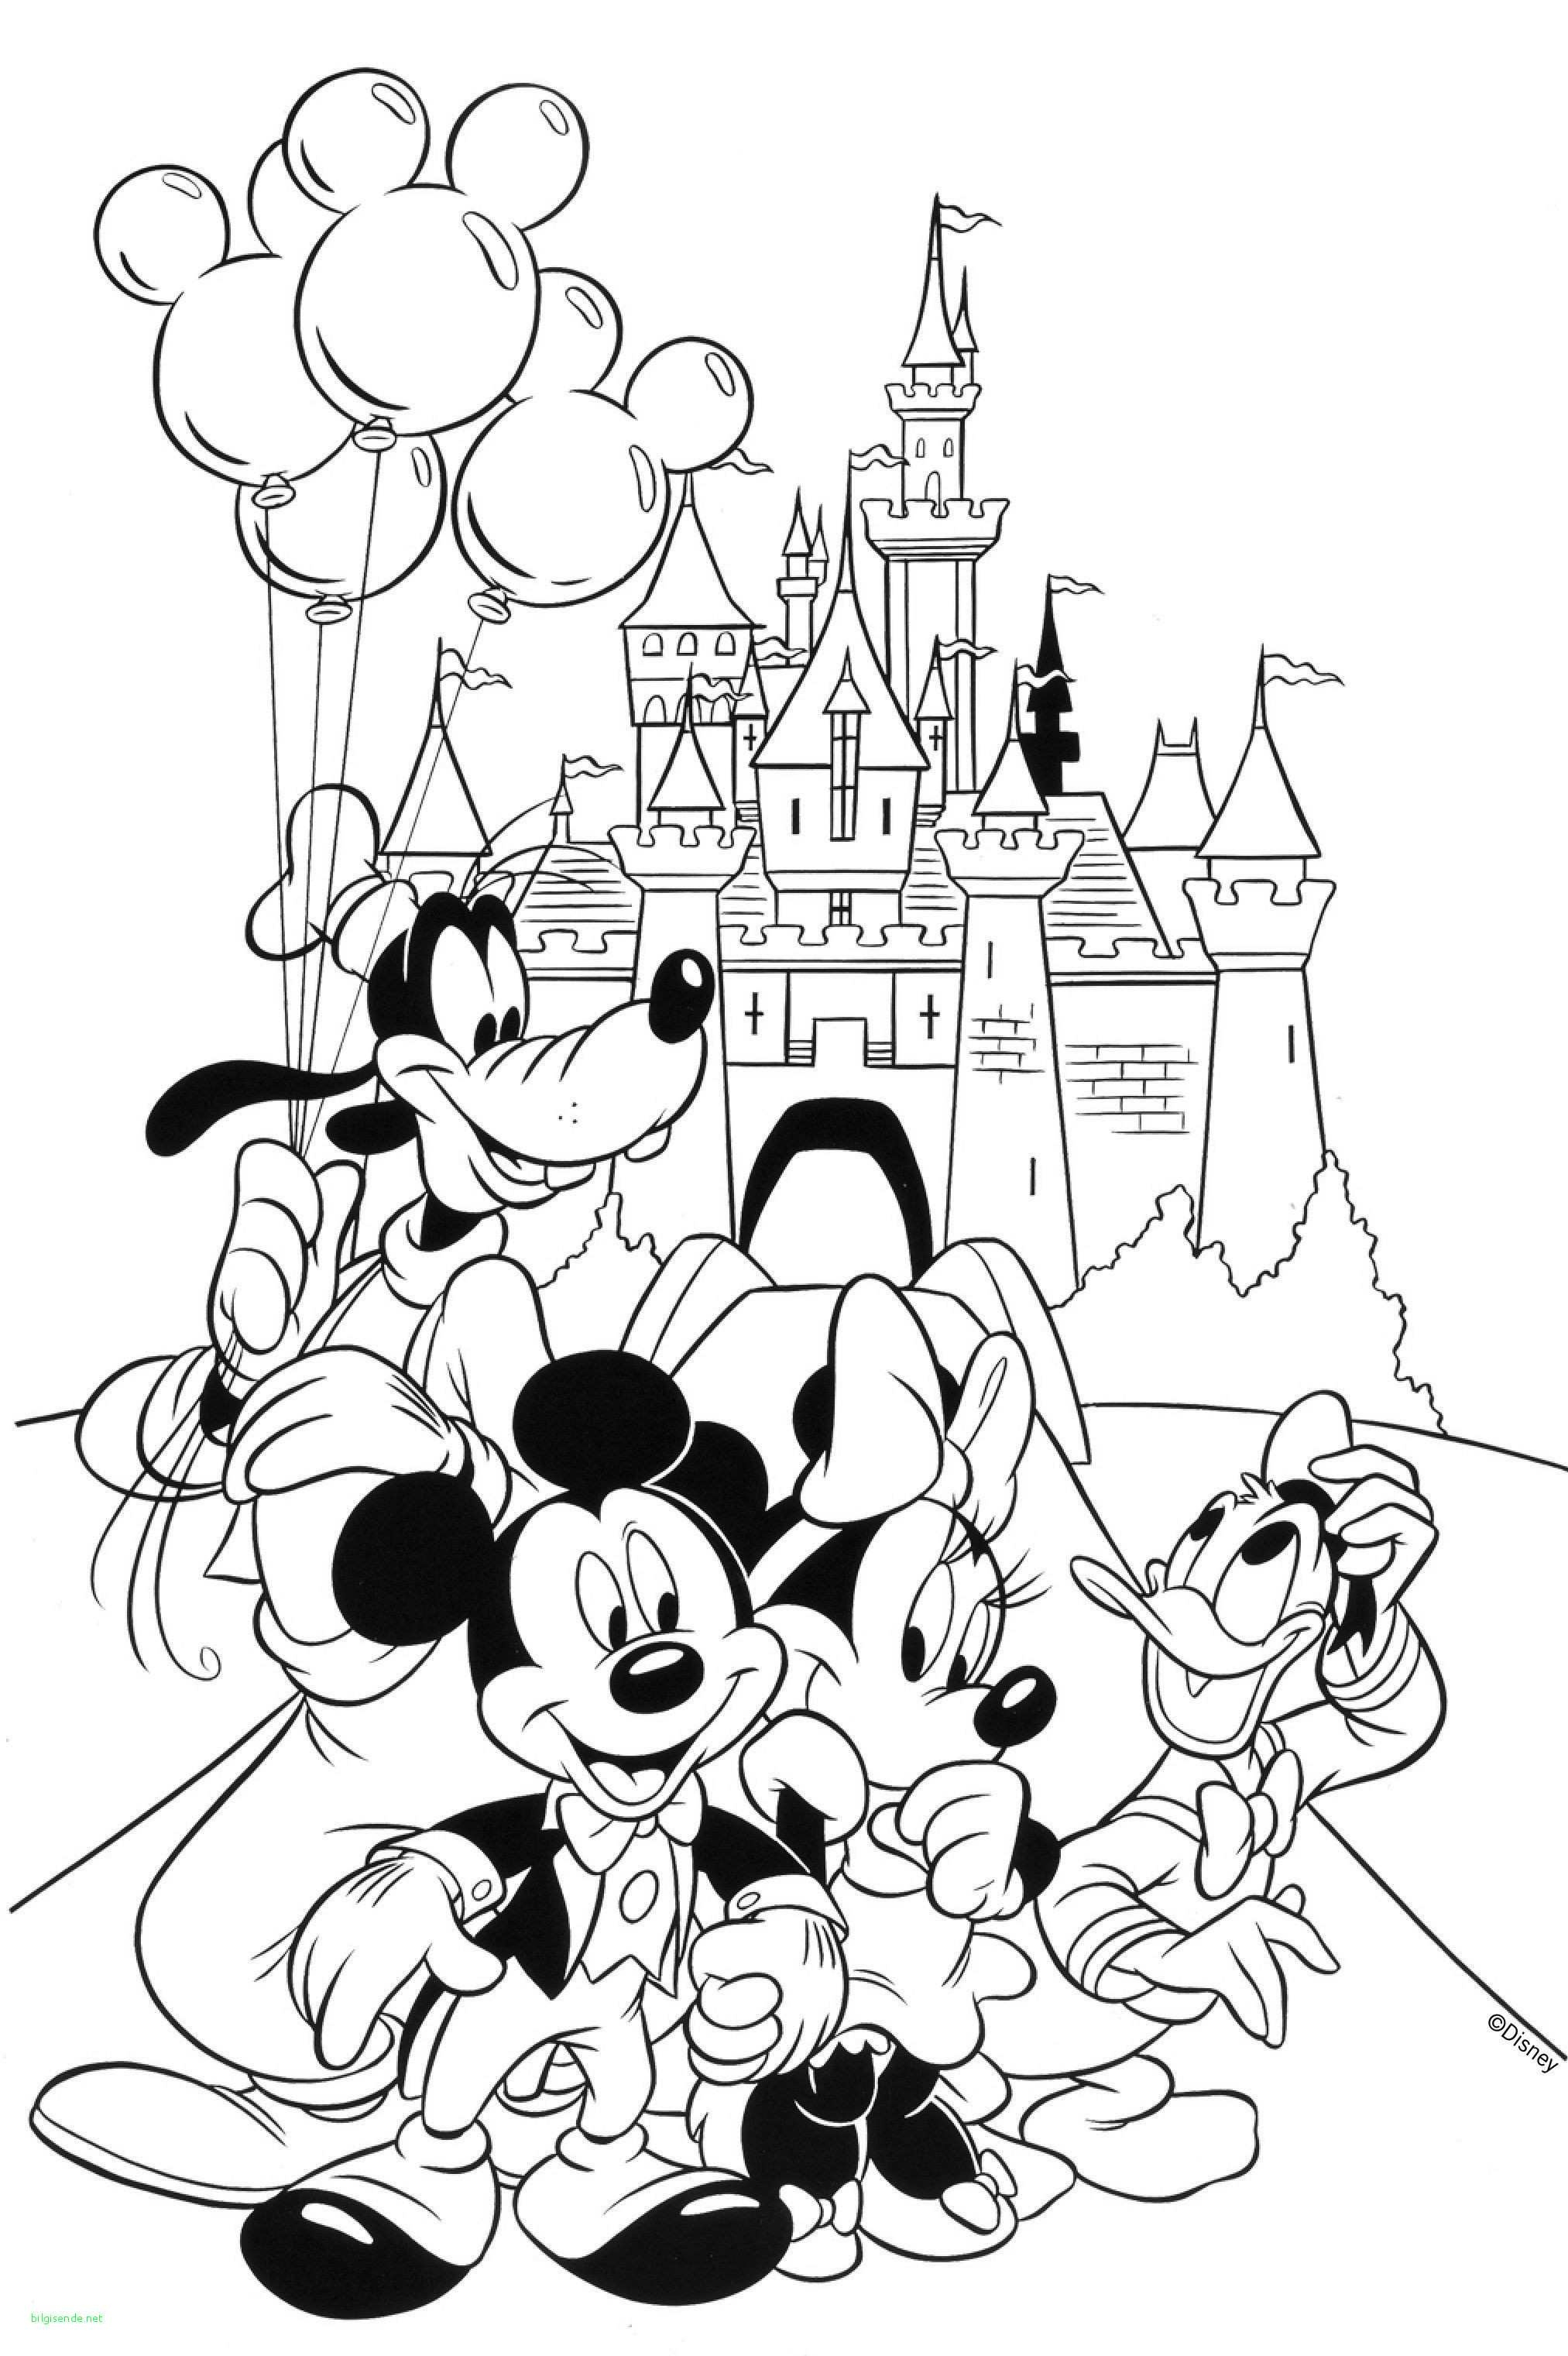 Coloring ~ Coloring Book Disney Characters Pages Free Printable Baby - Free Printable Coloring Pages Of Disney Characters